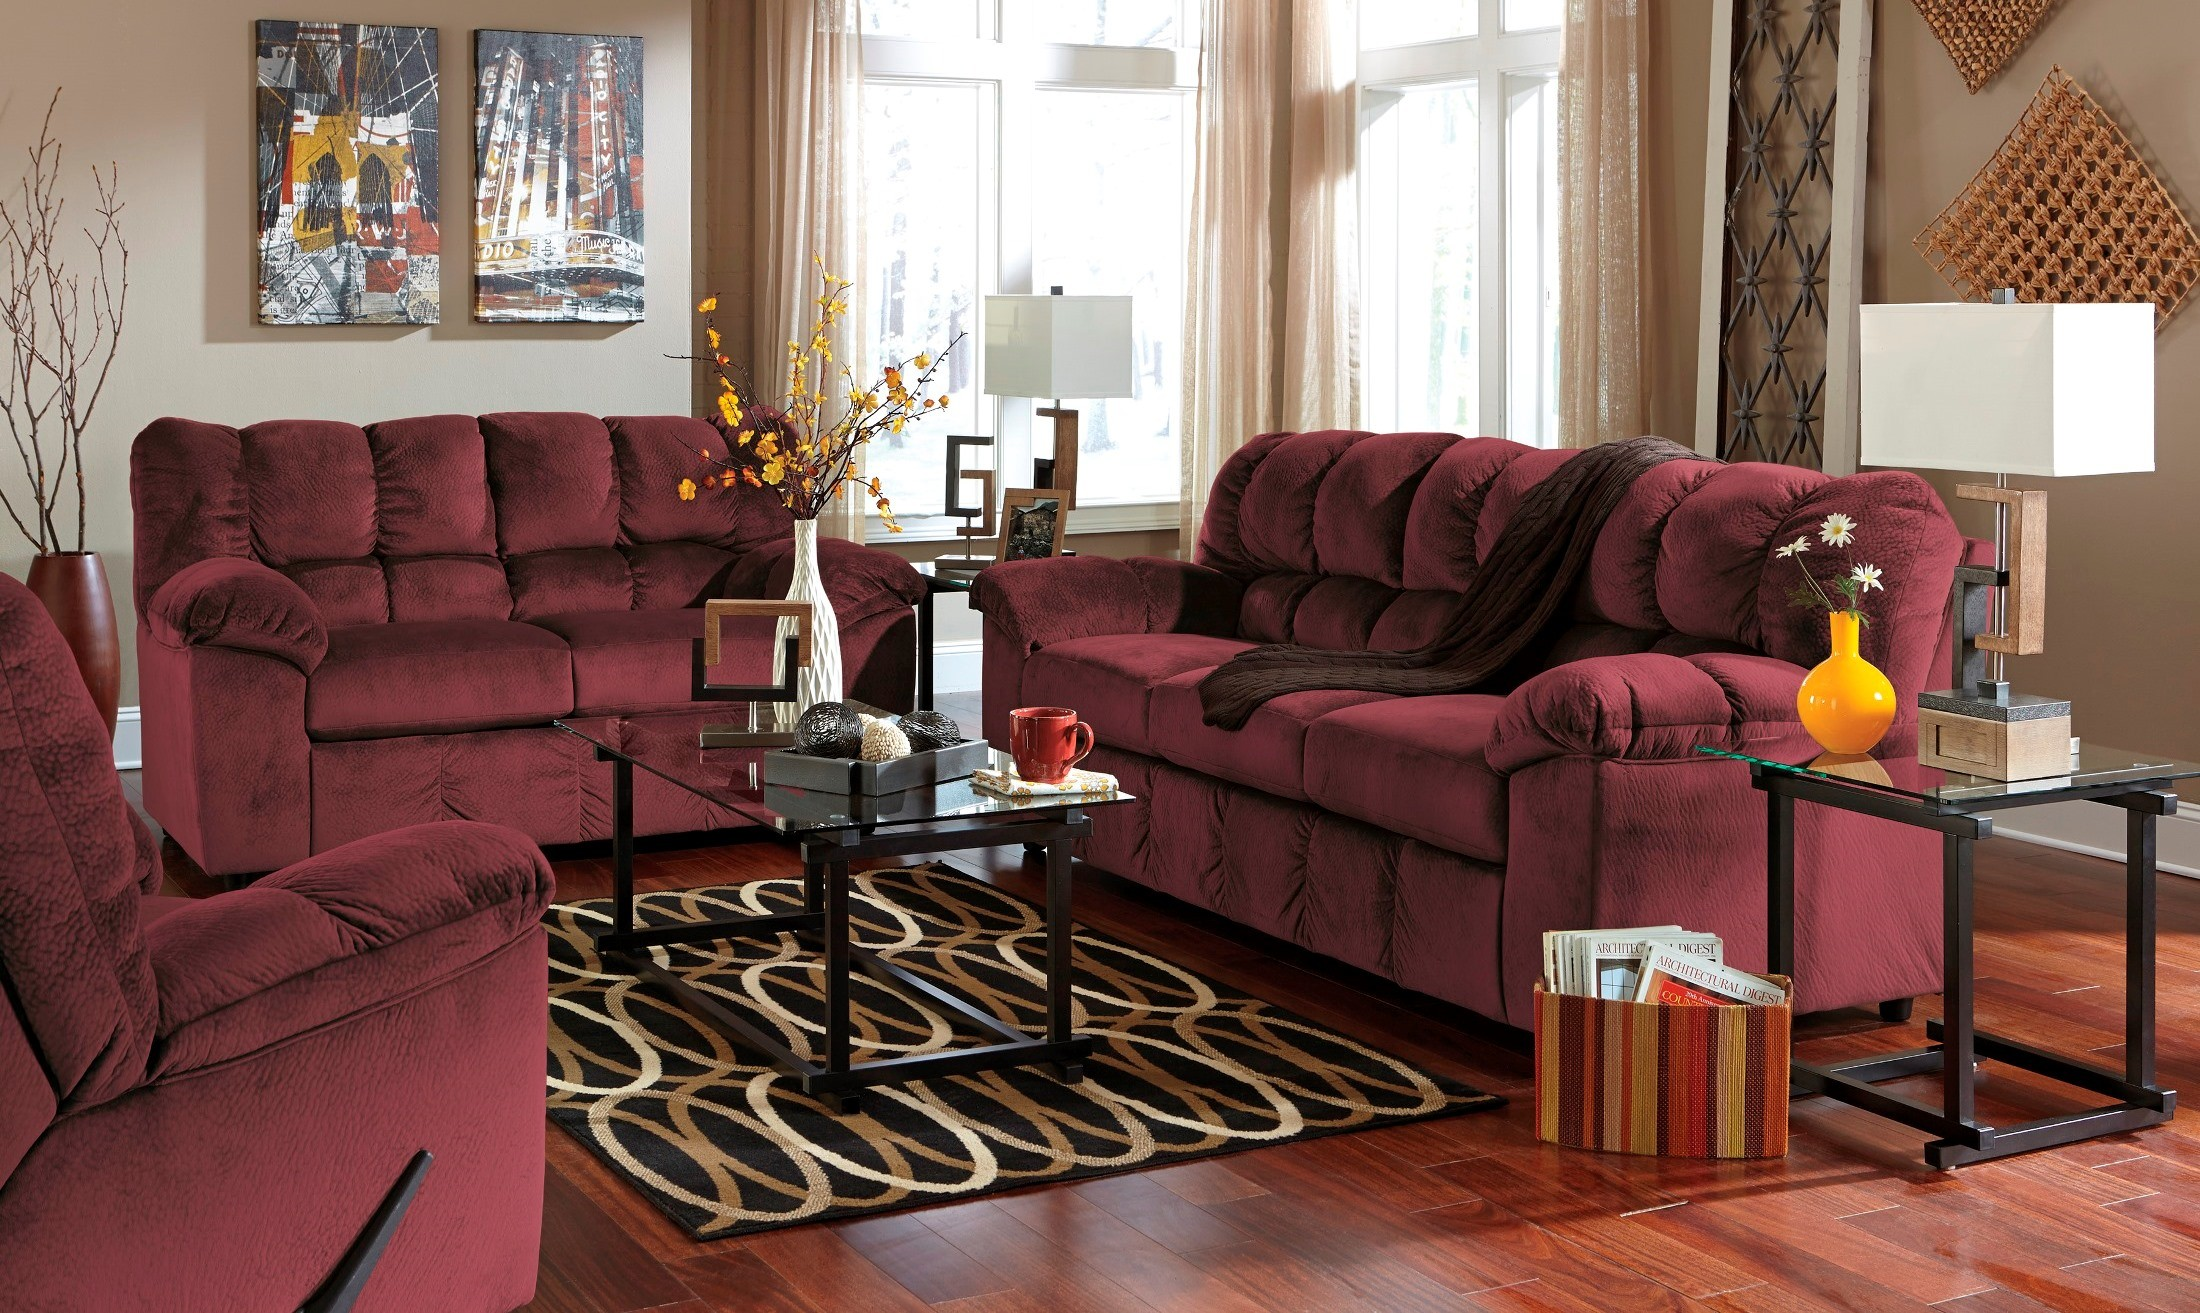 julson burgundy living room set from ashley 26602 38 35 coleman furniture